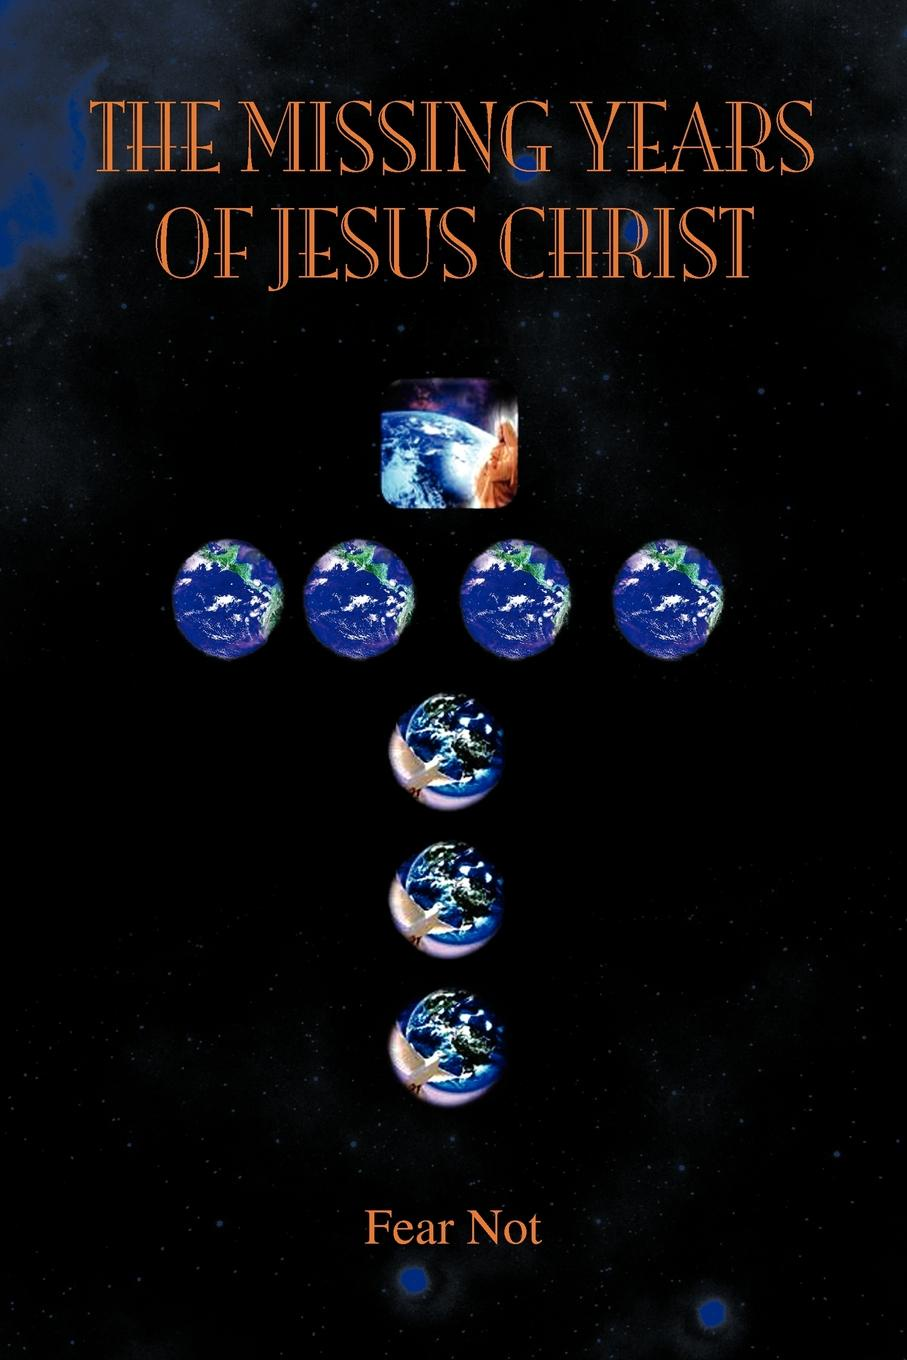 James Partch The Missing Years of Jesus Christ